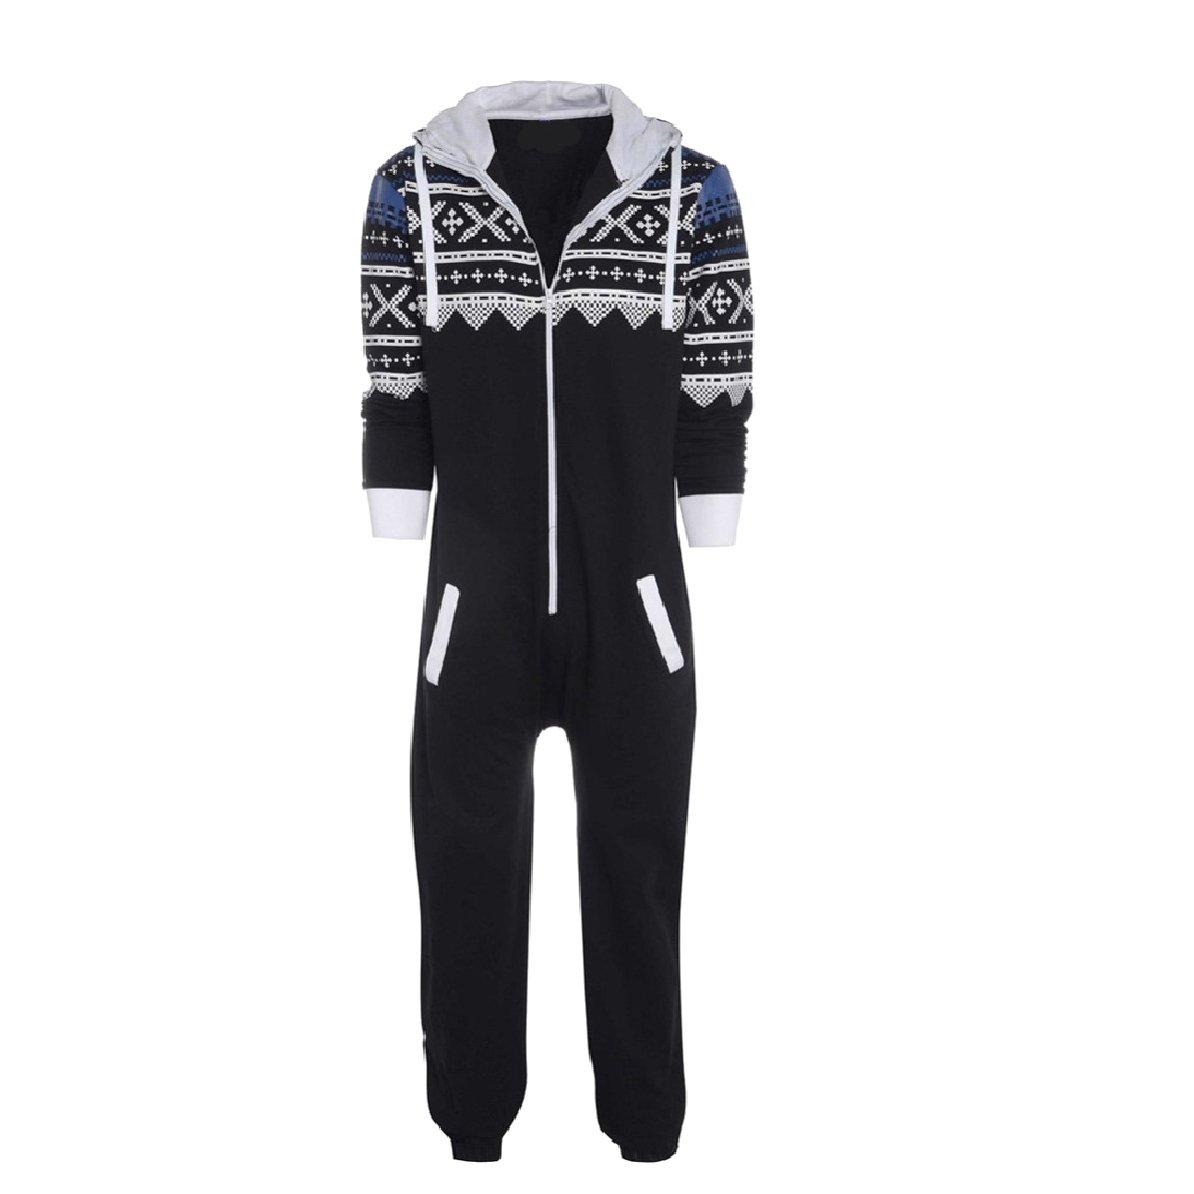 YUNY Men Rompers Fine Cotton Hood Lounger Cosplay Jumpsuit Pajamas Black L